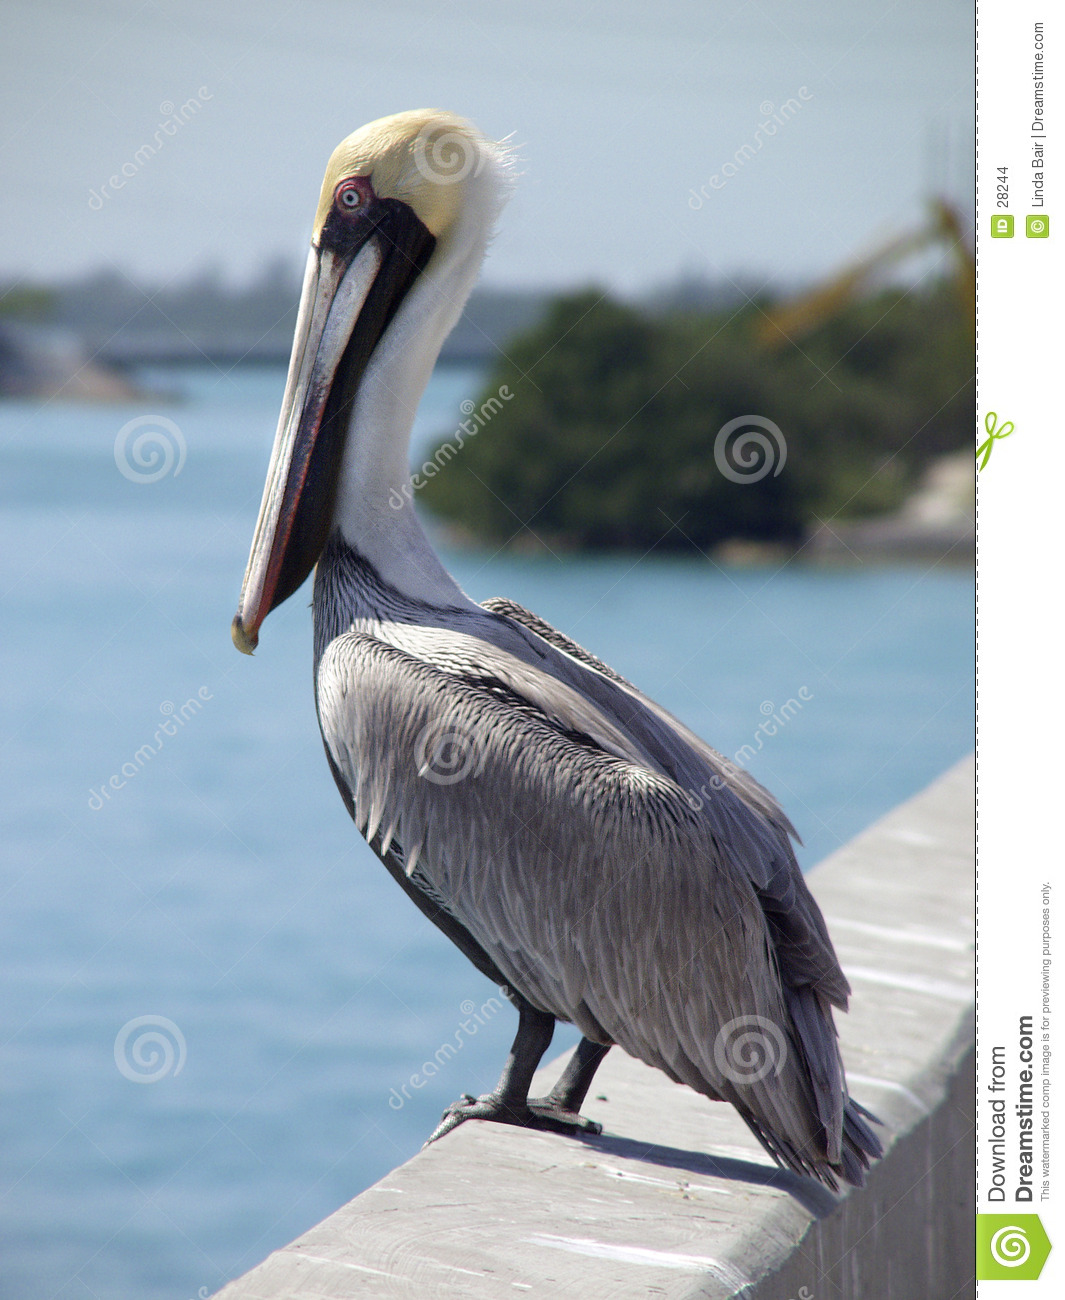 Pelican on Bridge